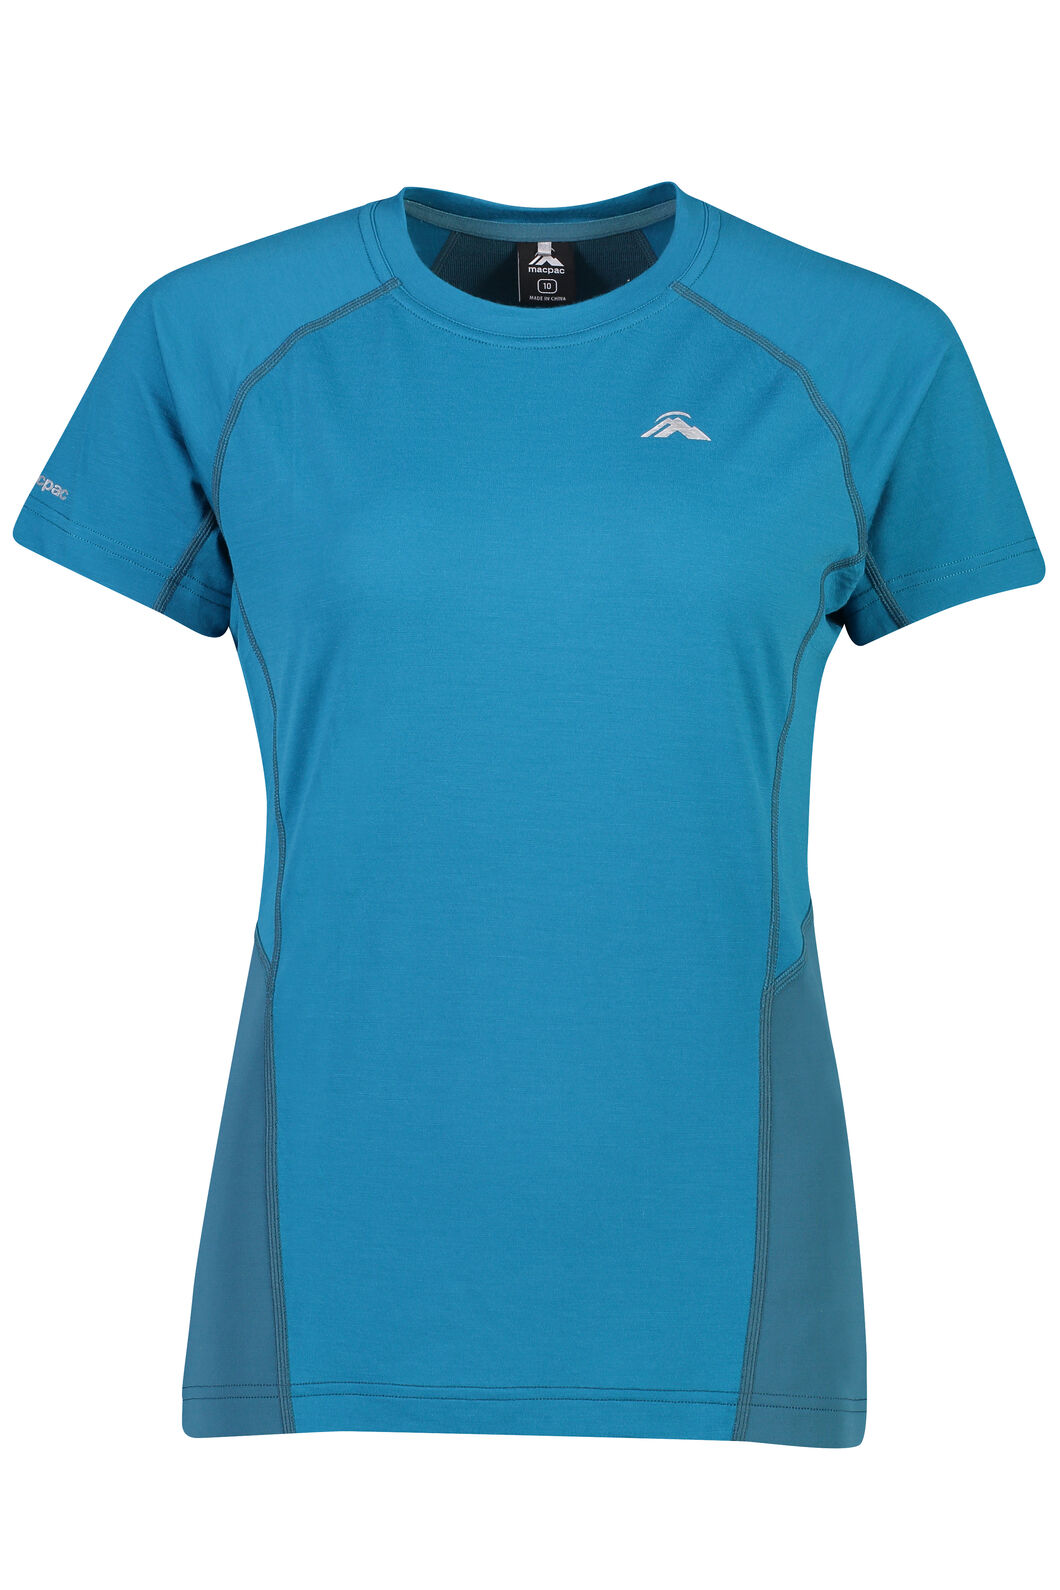 Macpac Casswell Short Sleeve Crew - Women's, Ocean Depths, hi-res